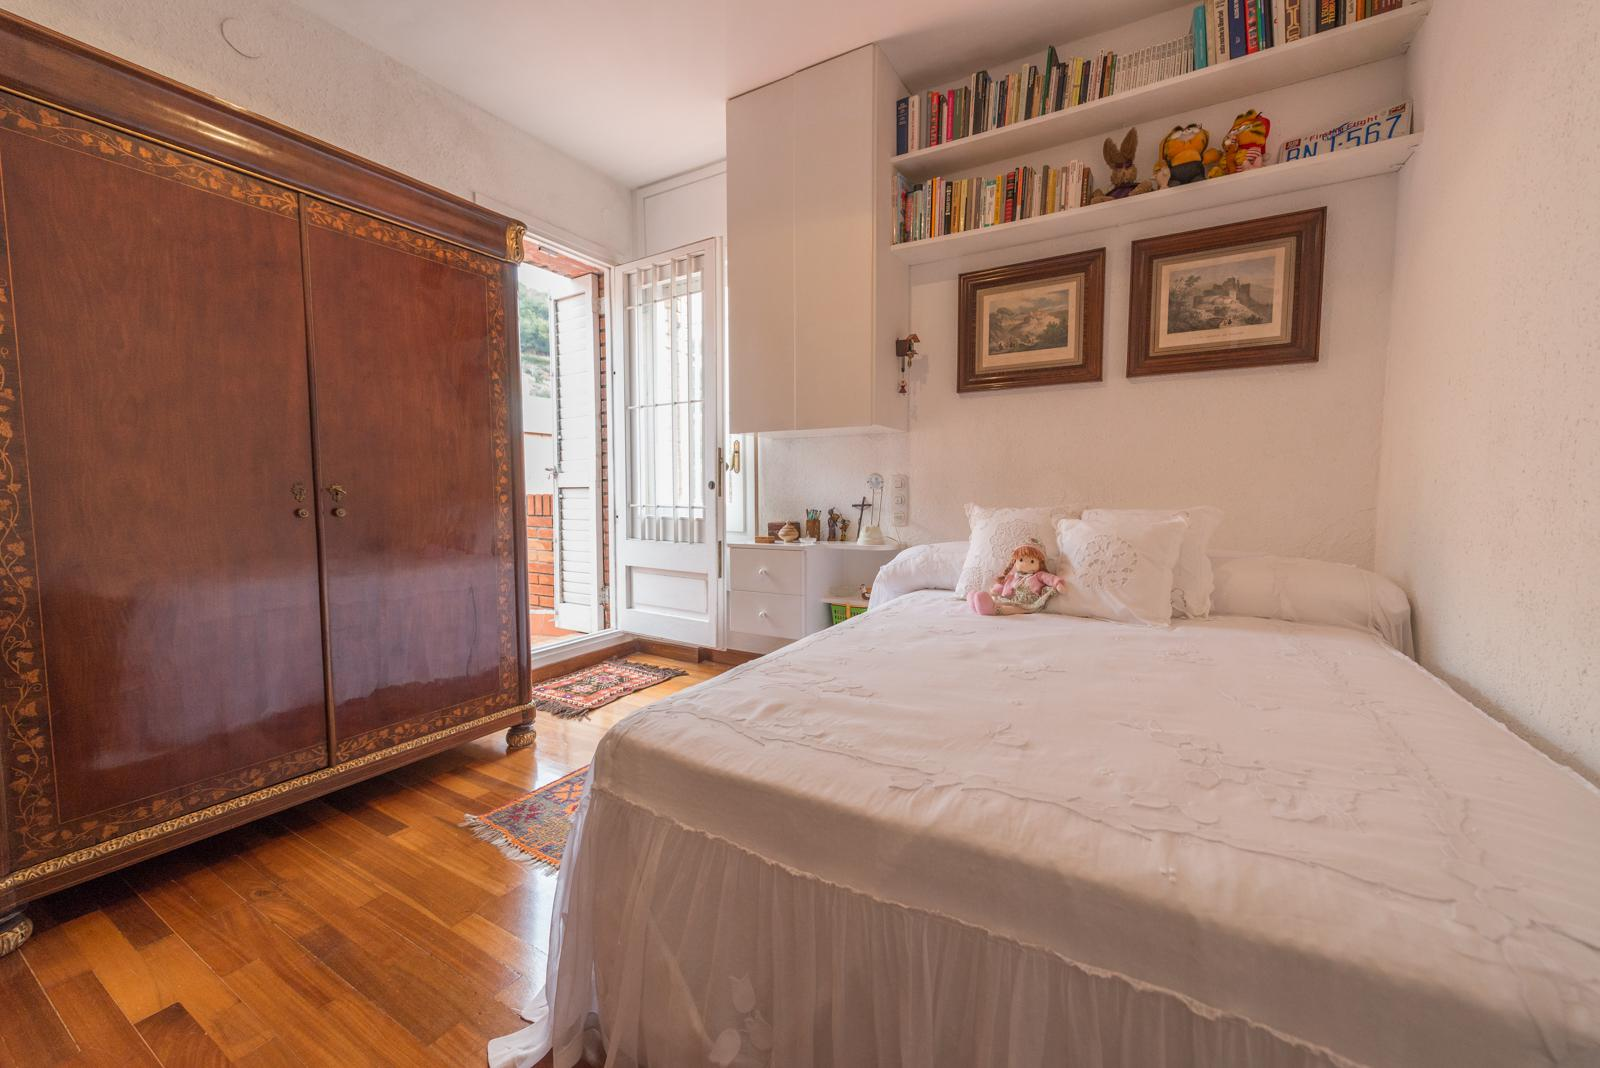 74341 Townhouse for sale in Gràcia, Vallcarca i els Penitents 16